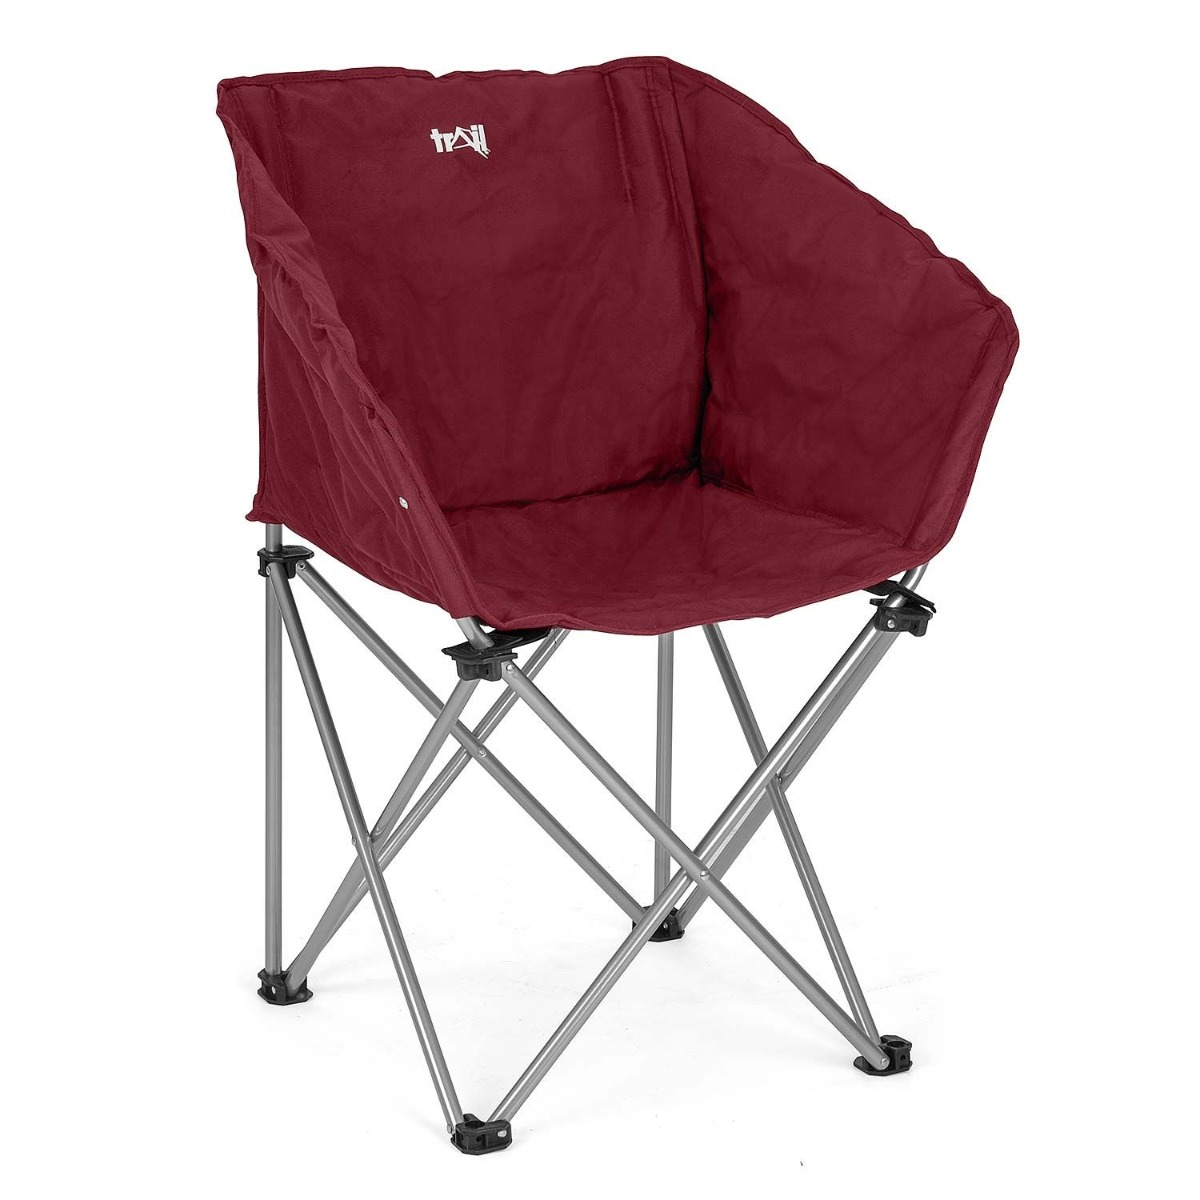 Terrific Details About Festival Camping Kit Folding Chair Sleeping Mat Envelope Sleeping Bag Bundle Pdpeps Interior Chair Design Pdpepsorg